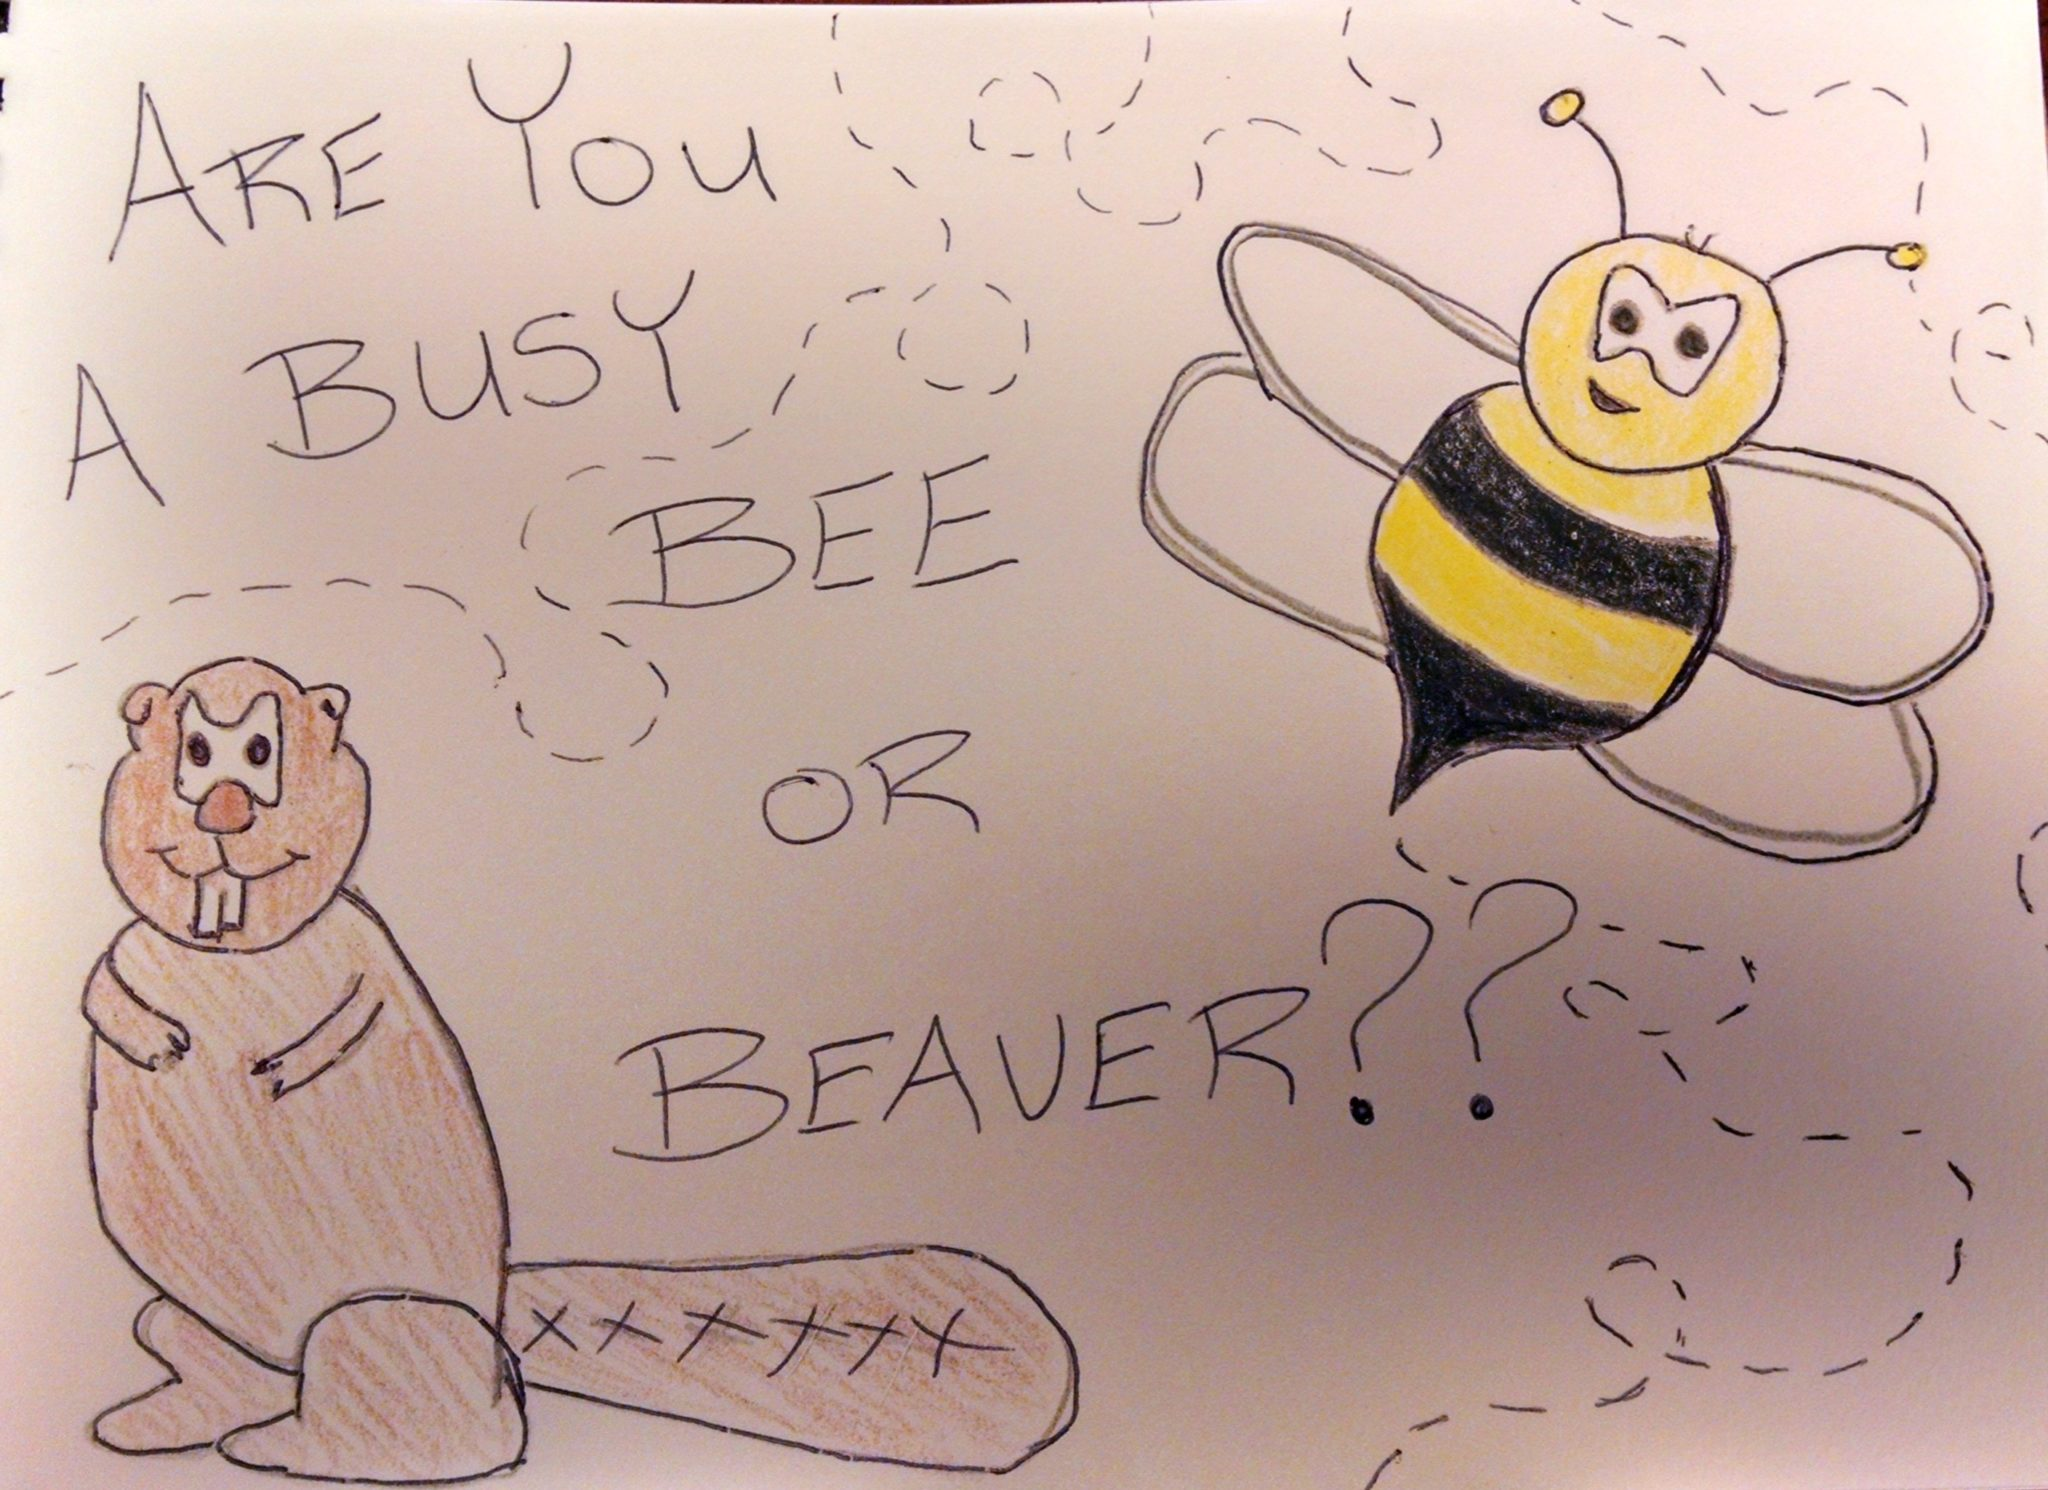 Stepping Up Your Game #2- Are you a Busy Bee or a Busy Beaver?